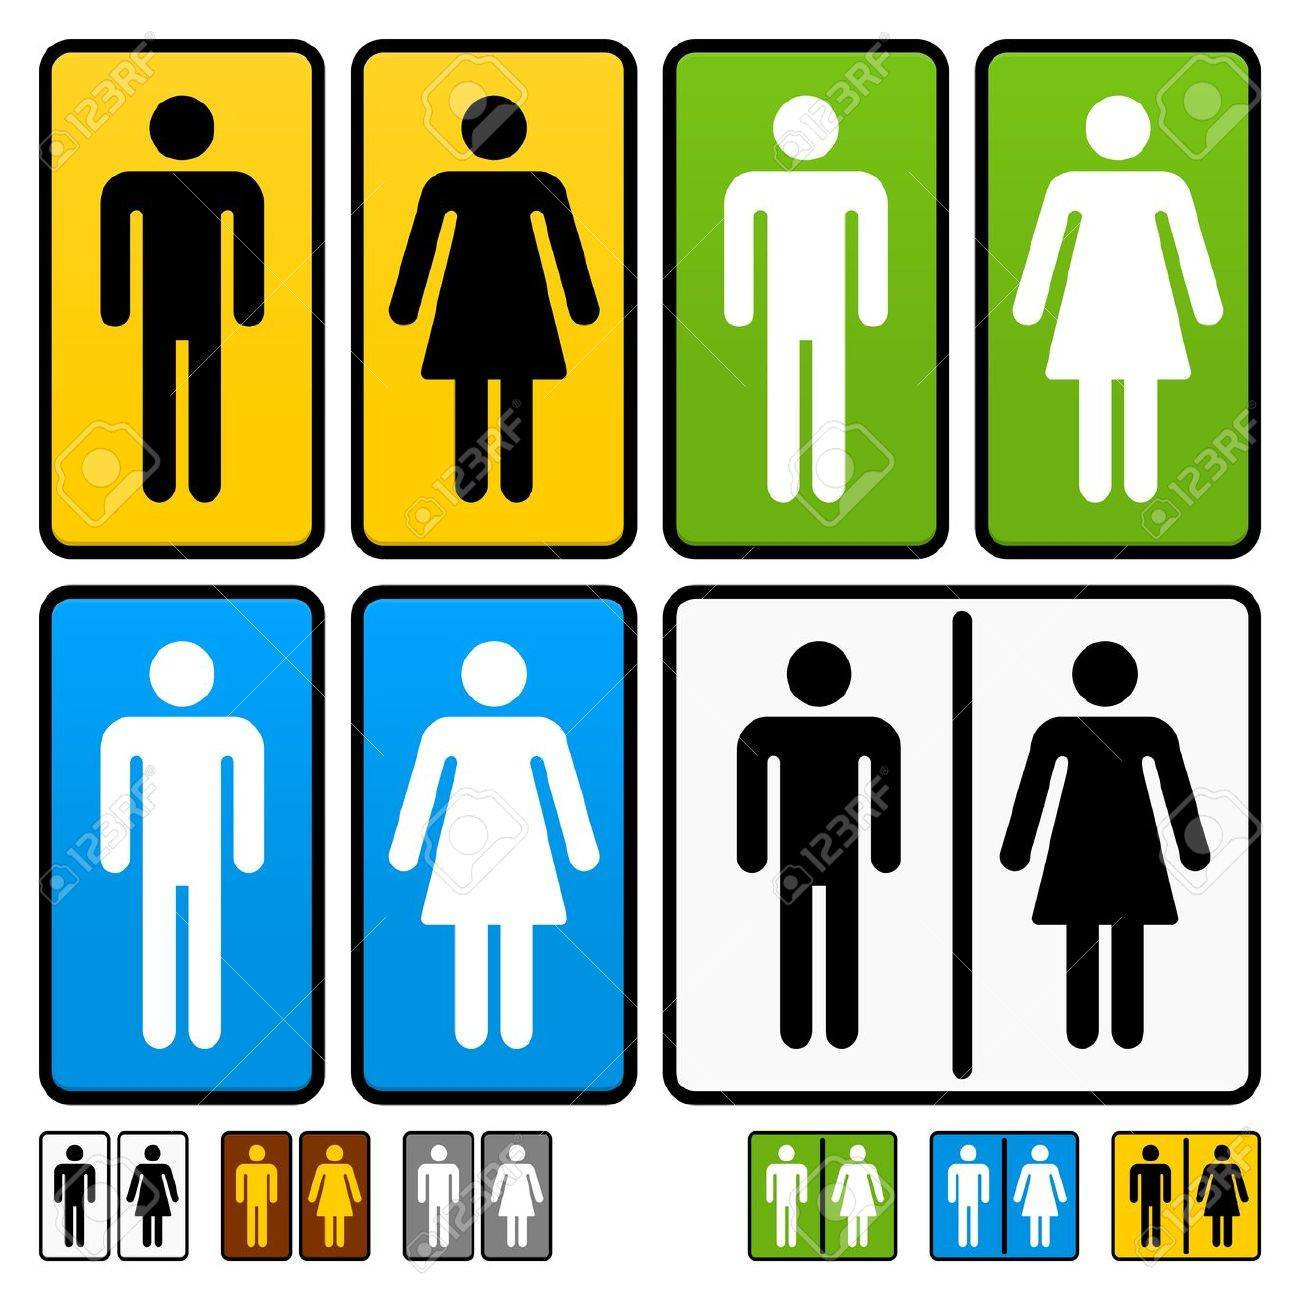 Male and Female Restrooms Vector Sign Stock Vector - 12274693